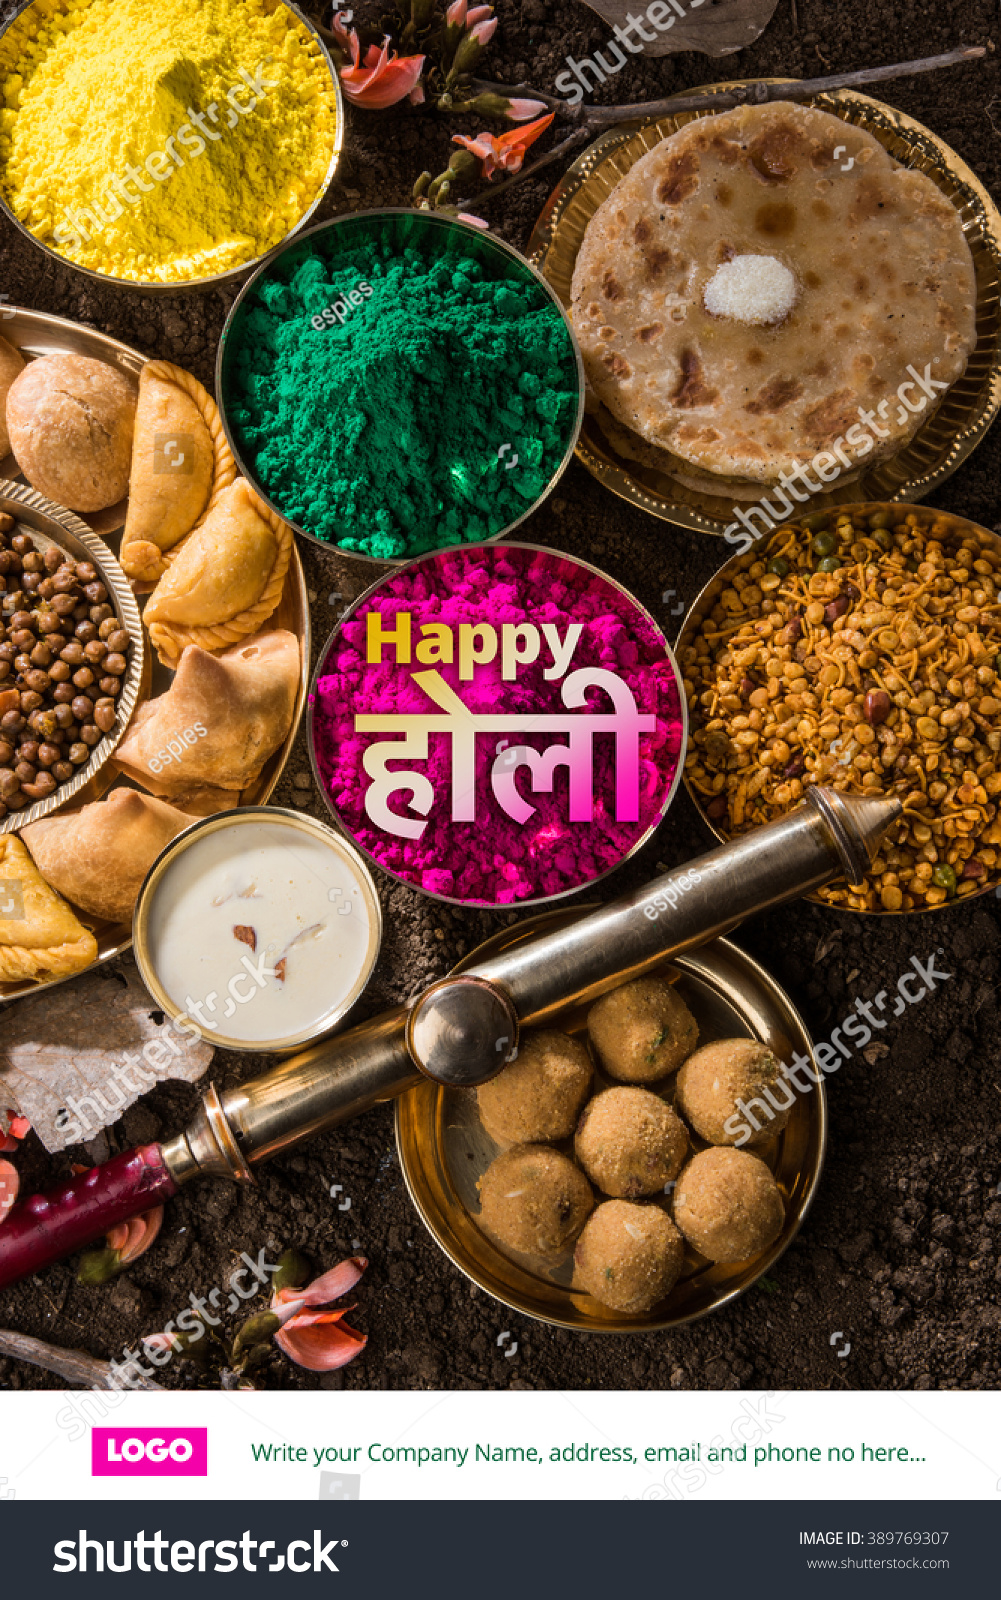 Happy holi greeting card designed showing stock photo royalty free happy holi greeting card designed showing indian traditional sweet and salty food flowers and powder forumfinder Gallery